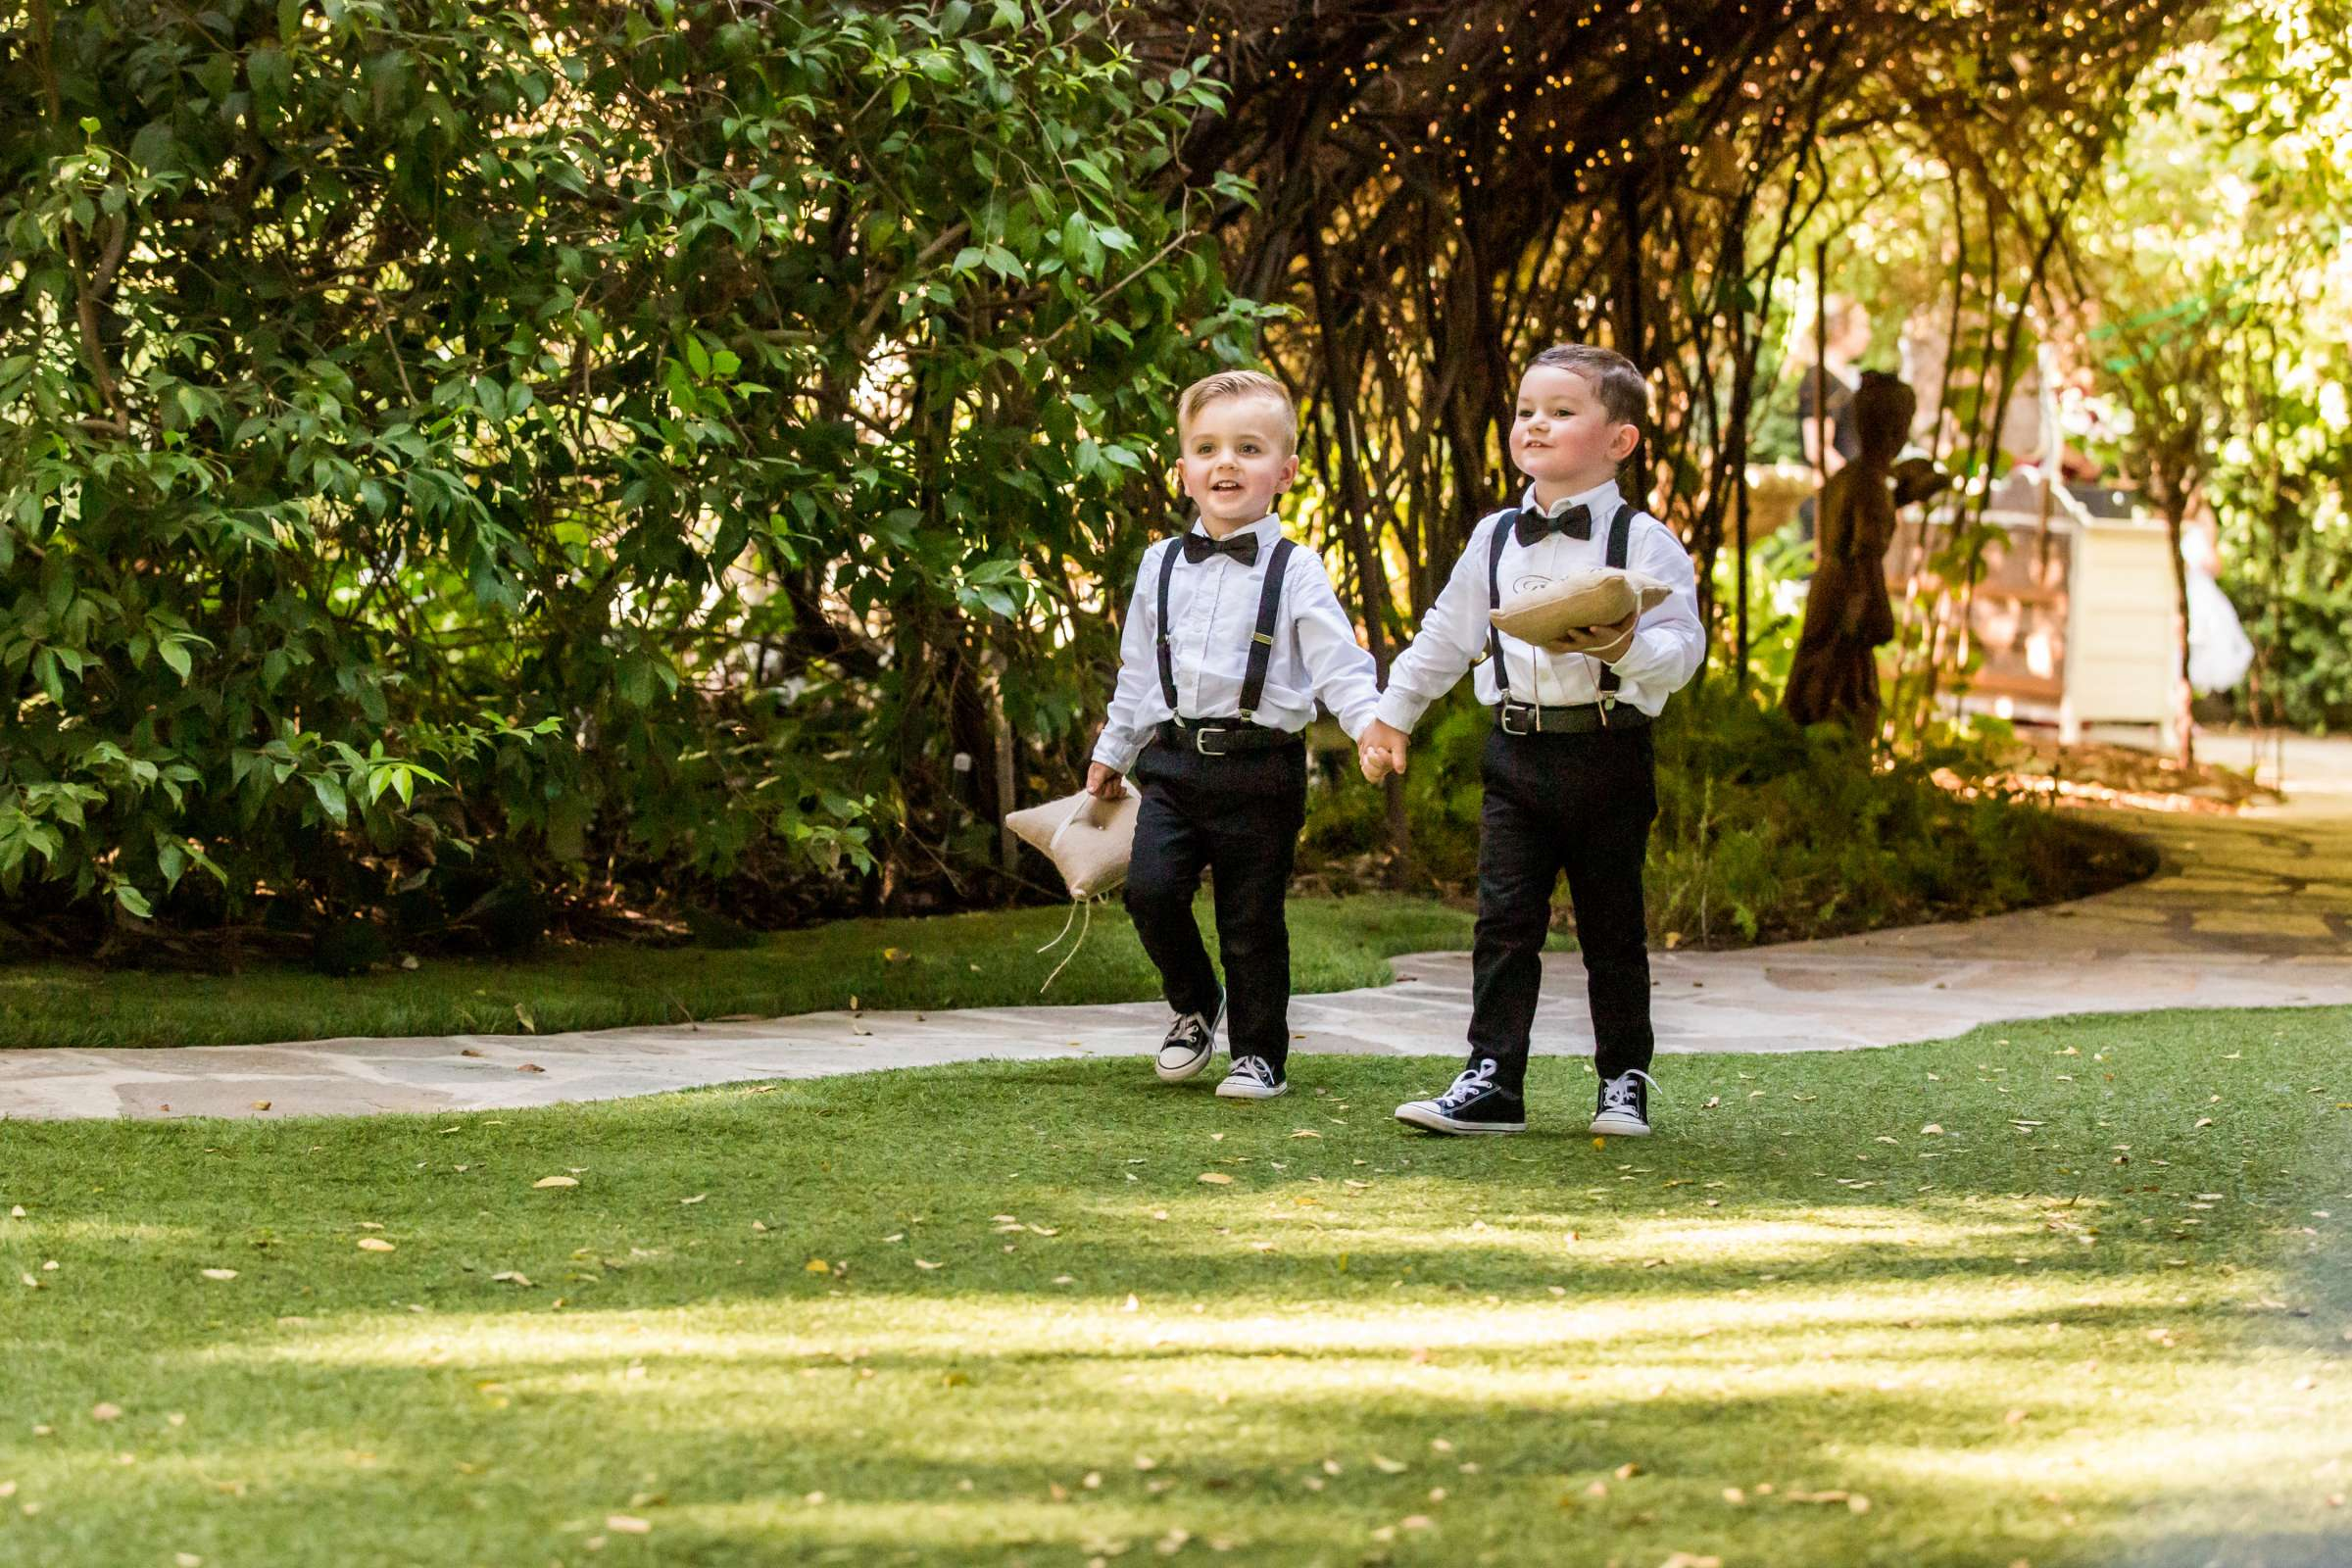 Twin Oaks House & Gardens Wedding Estate Wedding, Brittany and Sean Wedding Photo #66 by True Photography